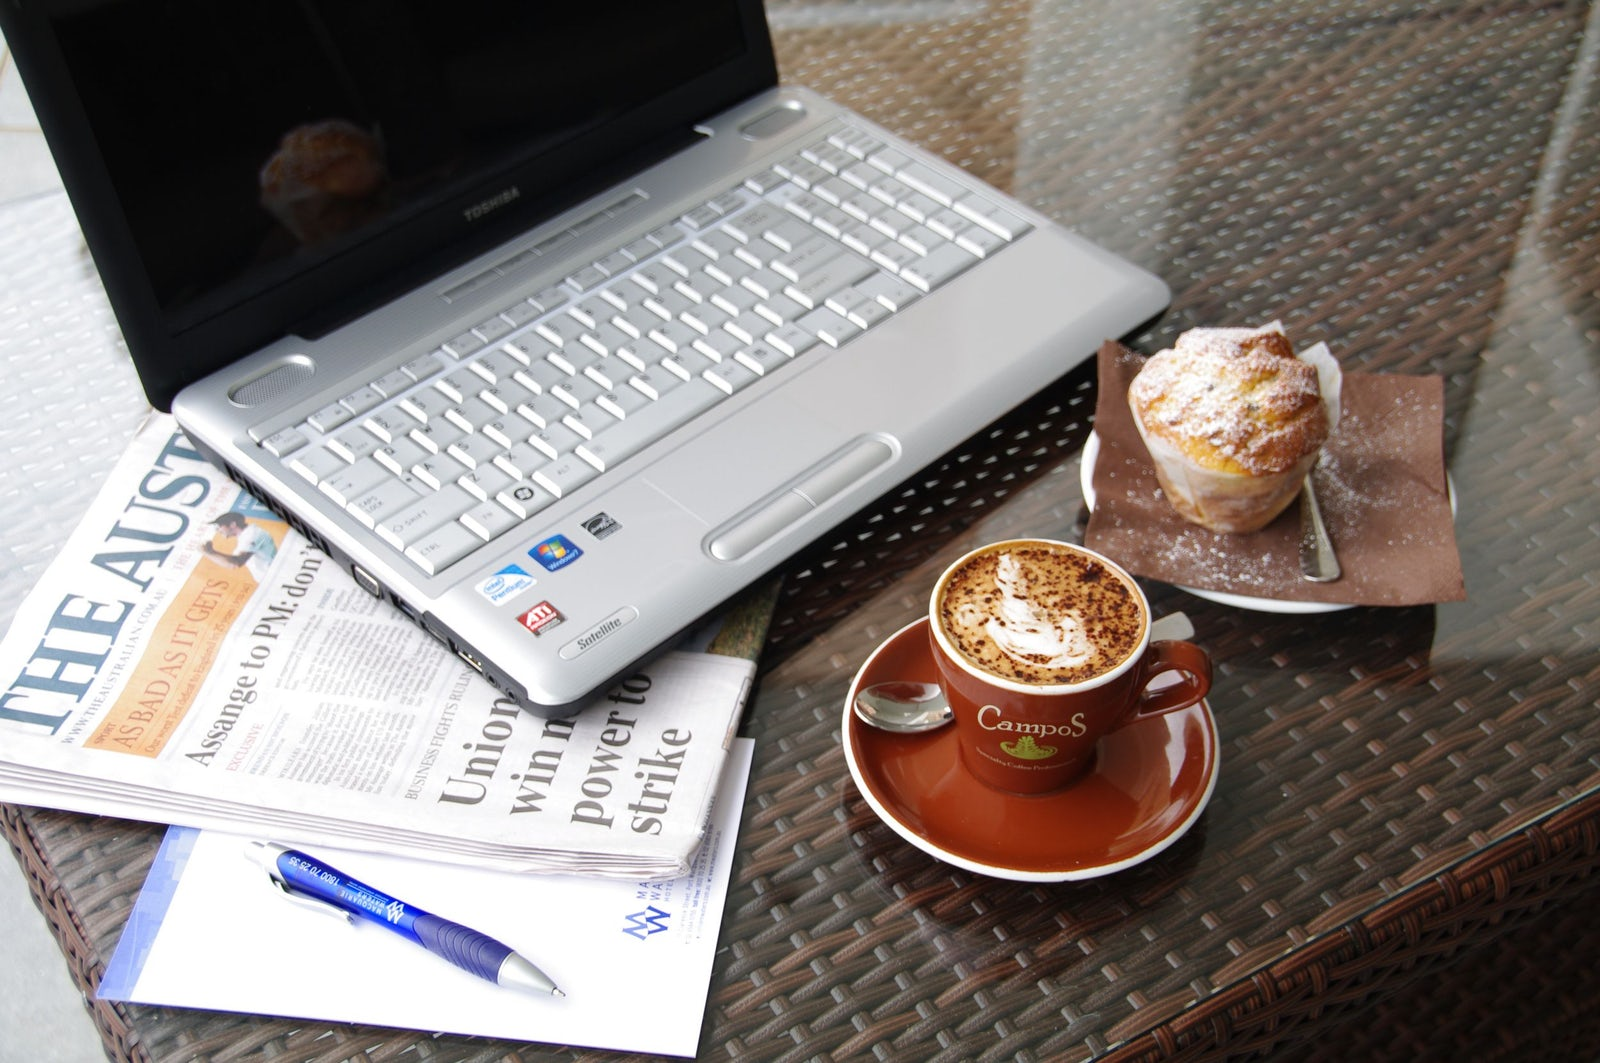 Customer Breakfast with Muffin, Coffee and Laptop